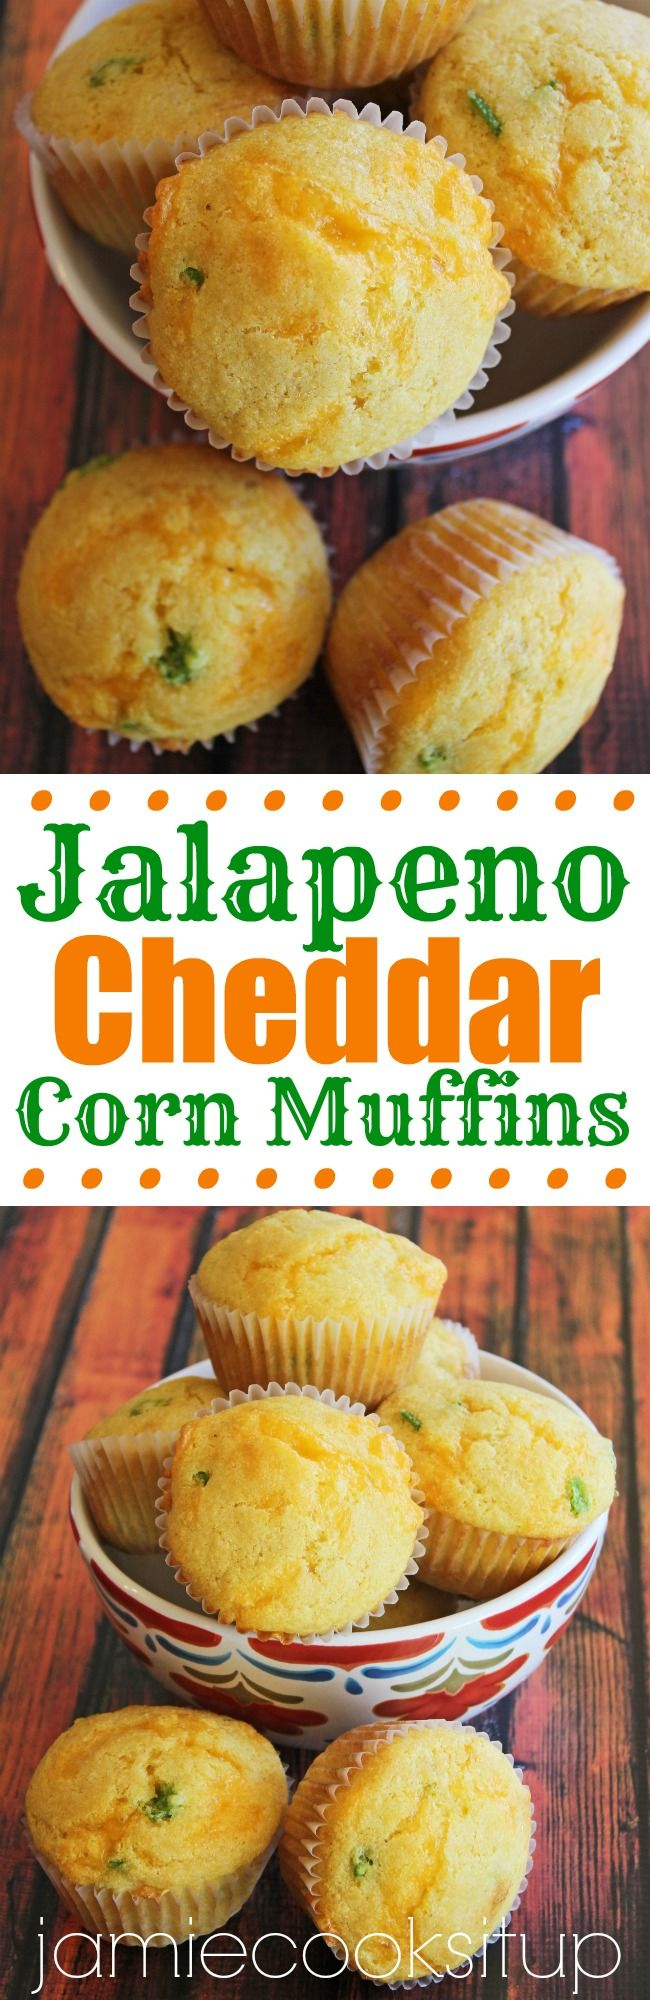 Jalapeno Cheddar Corn Muffins from Jamie Cooks It Up! These make the perfect side to just about any meal. They aren't overly spicy, with just enough heat to make them wonderful. Plus, they will only take you 30 minutes start to finish!